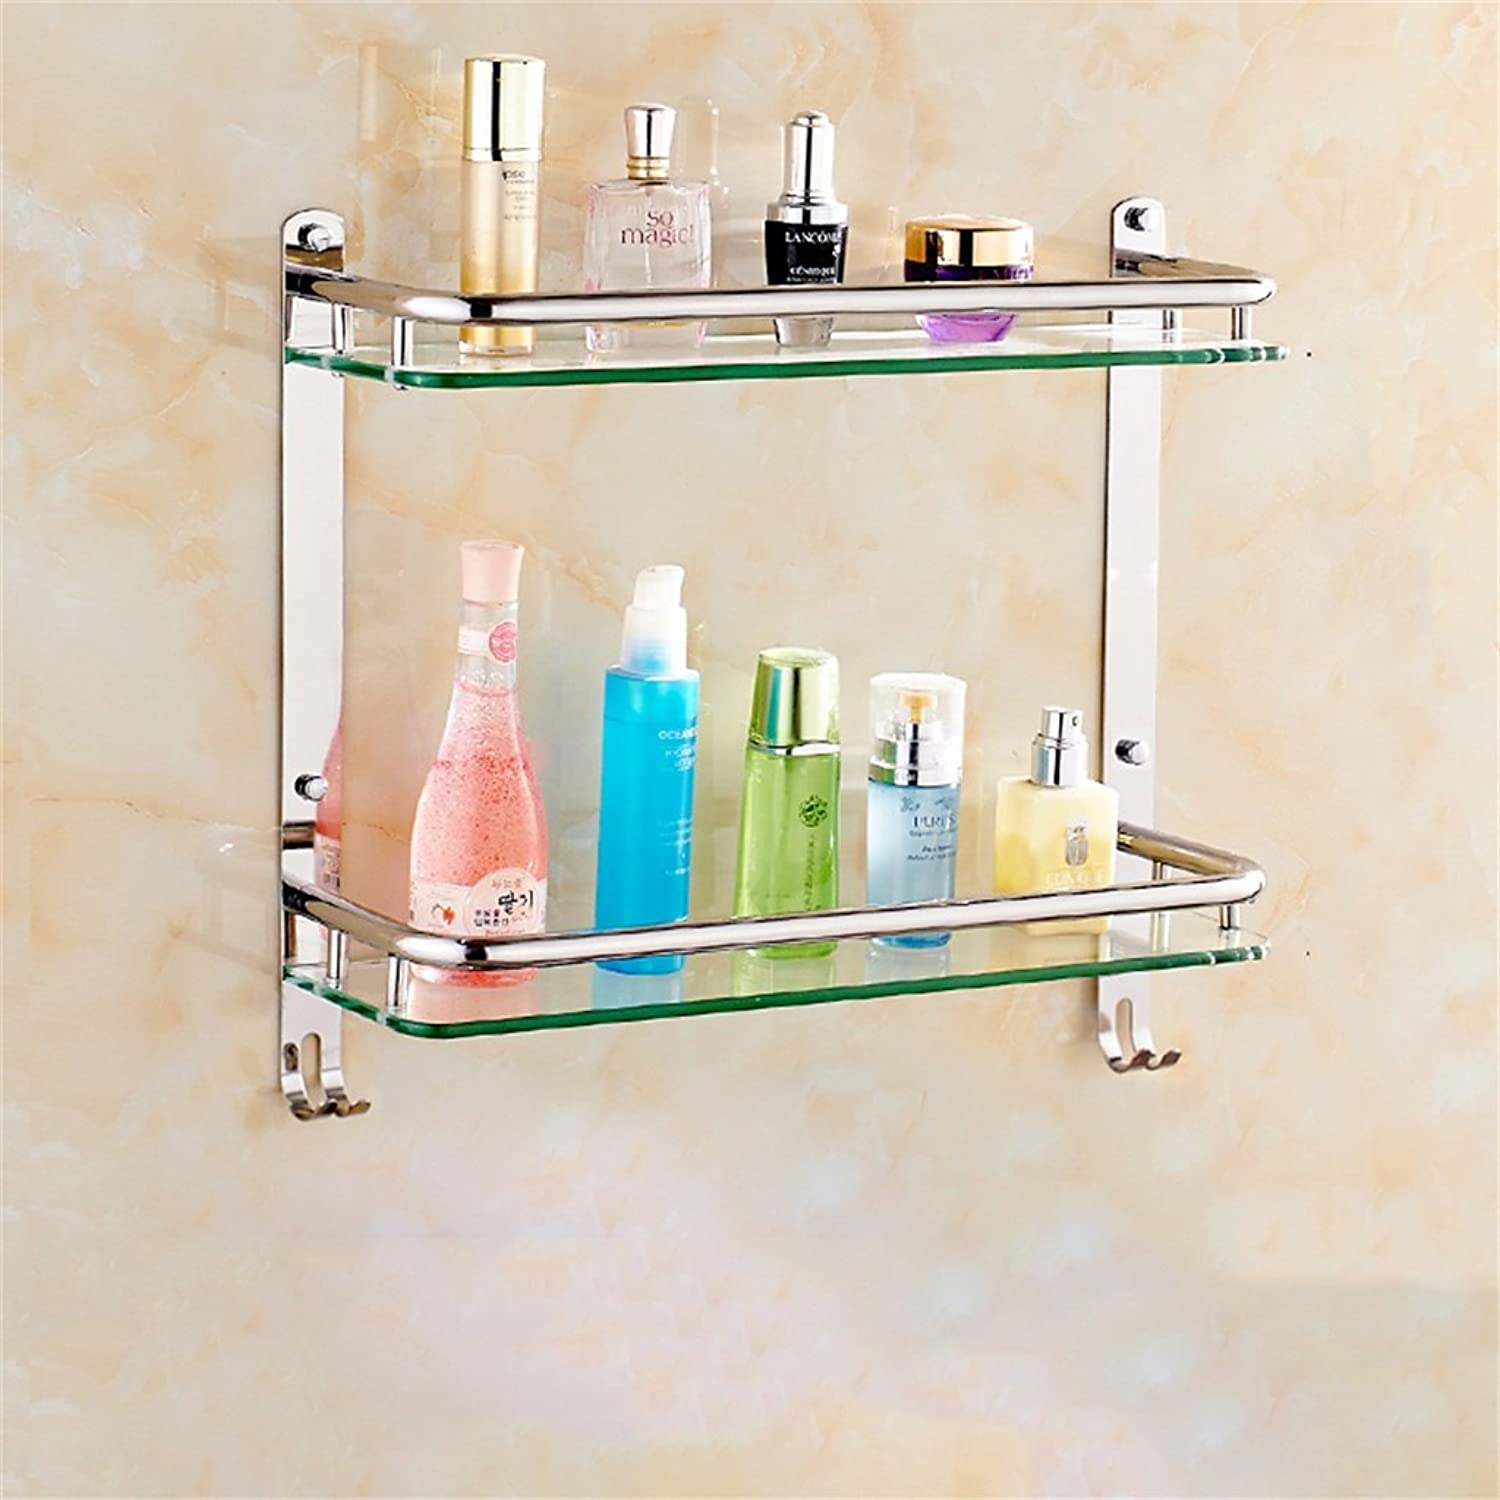 Cpp Shelf Bathroom Shelf Stainless Steel Bathroom Shelf Glass Bathroom Wall mountings Safety Rounded Corners (Size   41  38CM)